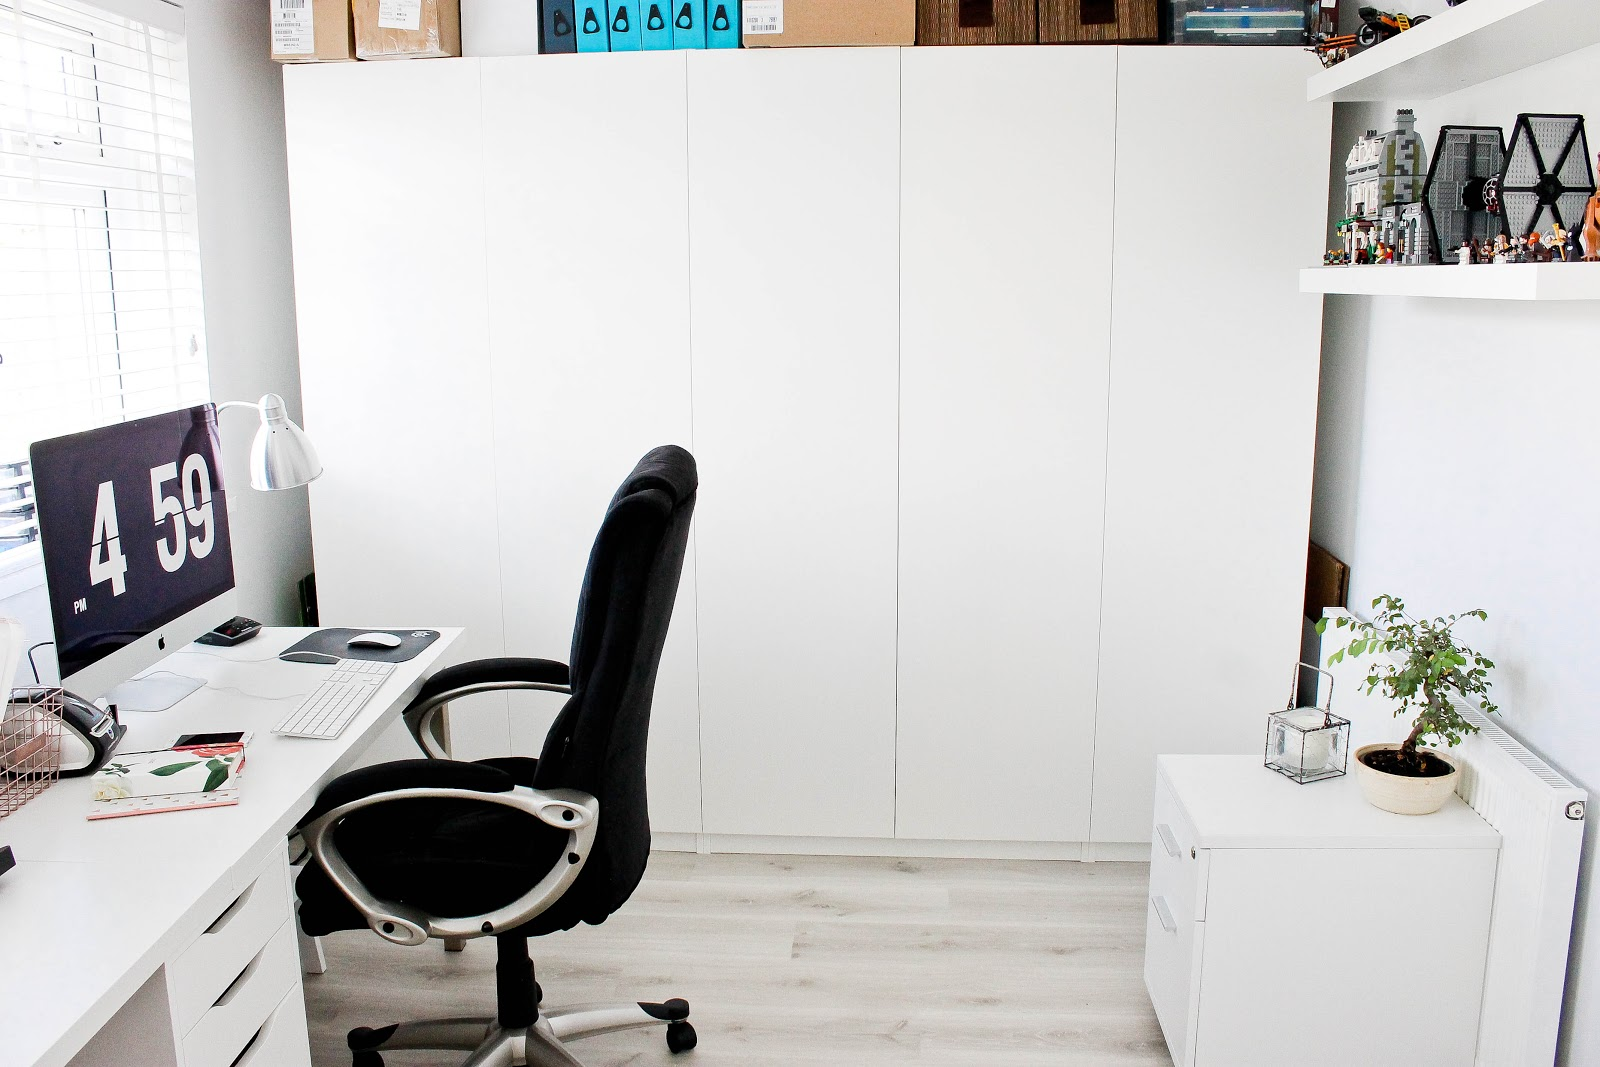 modern office, modern office desk, modern office chairs, ikea office, home office, home study, modern office interior, Scandinavian decor, Scandinavian interior, Scandinavian office furniture, lego display, lego lightsabers, office room tour, home interiors,